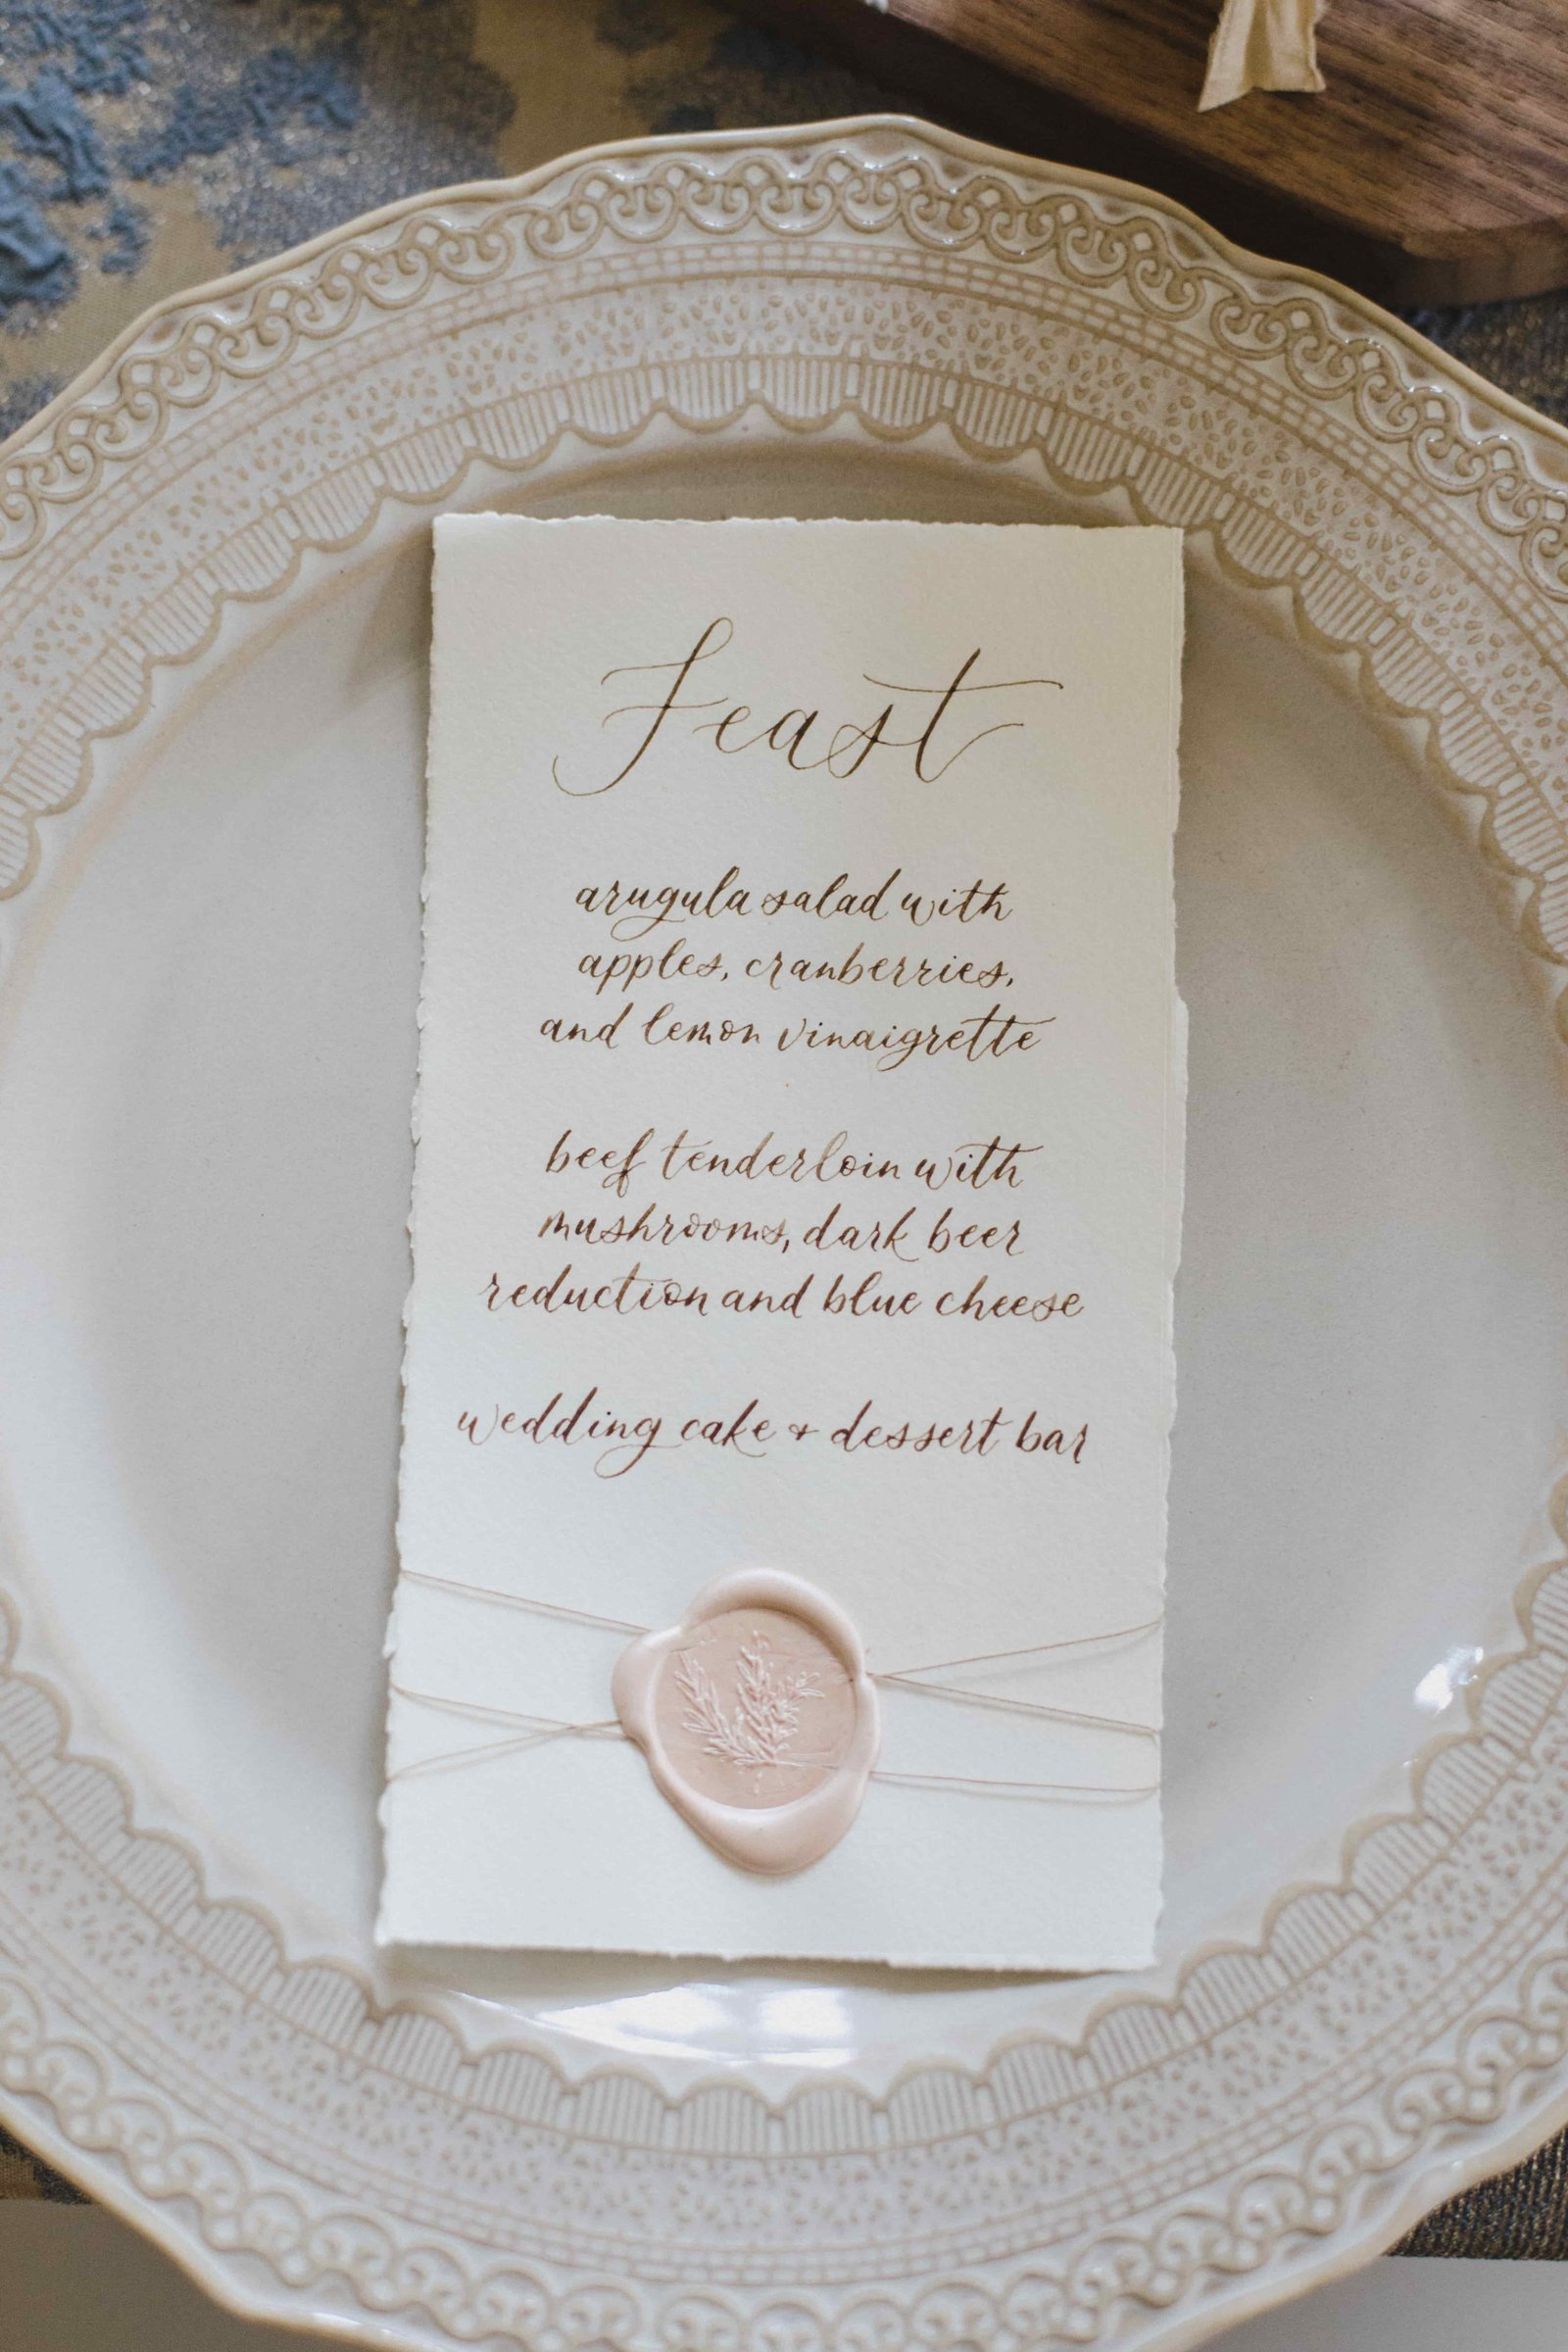 wedding menu calligraphy seattle wax seal-min